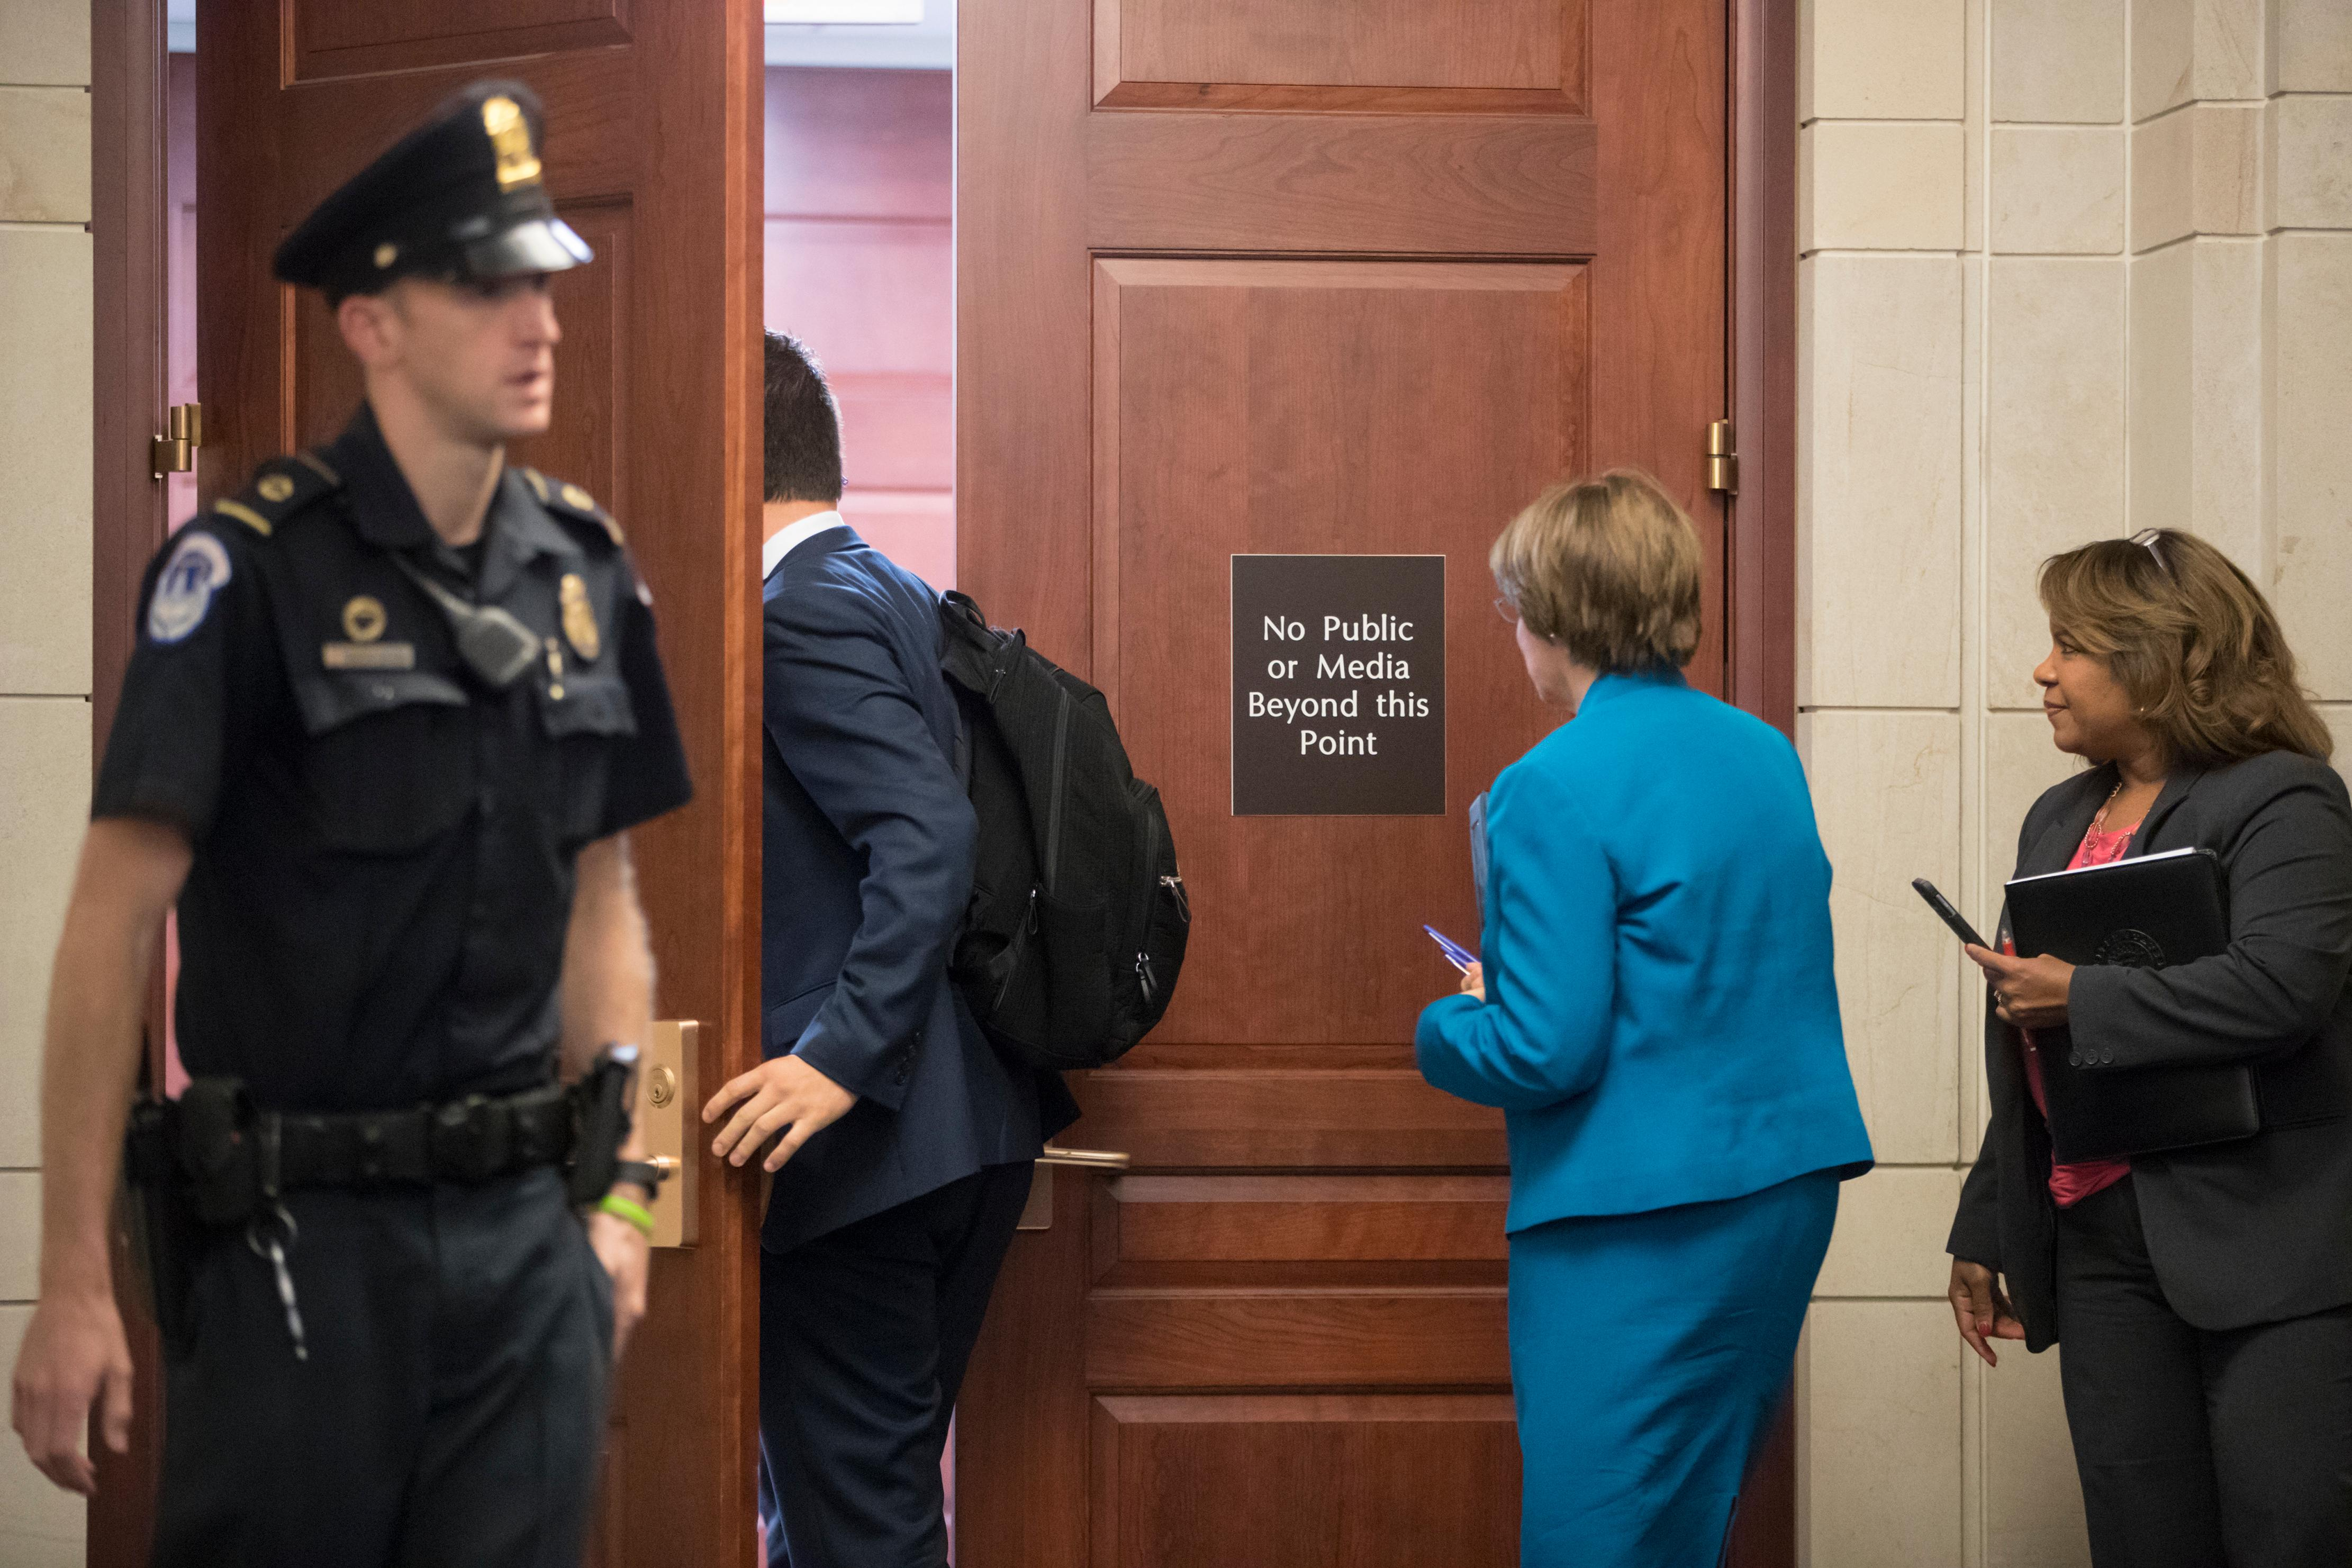 Sen. Amy Klobuchar, D-Minn., second from right, a member of the Senate Judiciary Committee, leaves a closed-door interview with Donald Trump Jr., as the panel investigates the meddling and possible Russian links to President Donald Trump's 2016 presidential campaign, at the Capitol in Washington, Thursday, Sept. 7, 2017.  (AP Photo/J. Scott Applewhite)